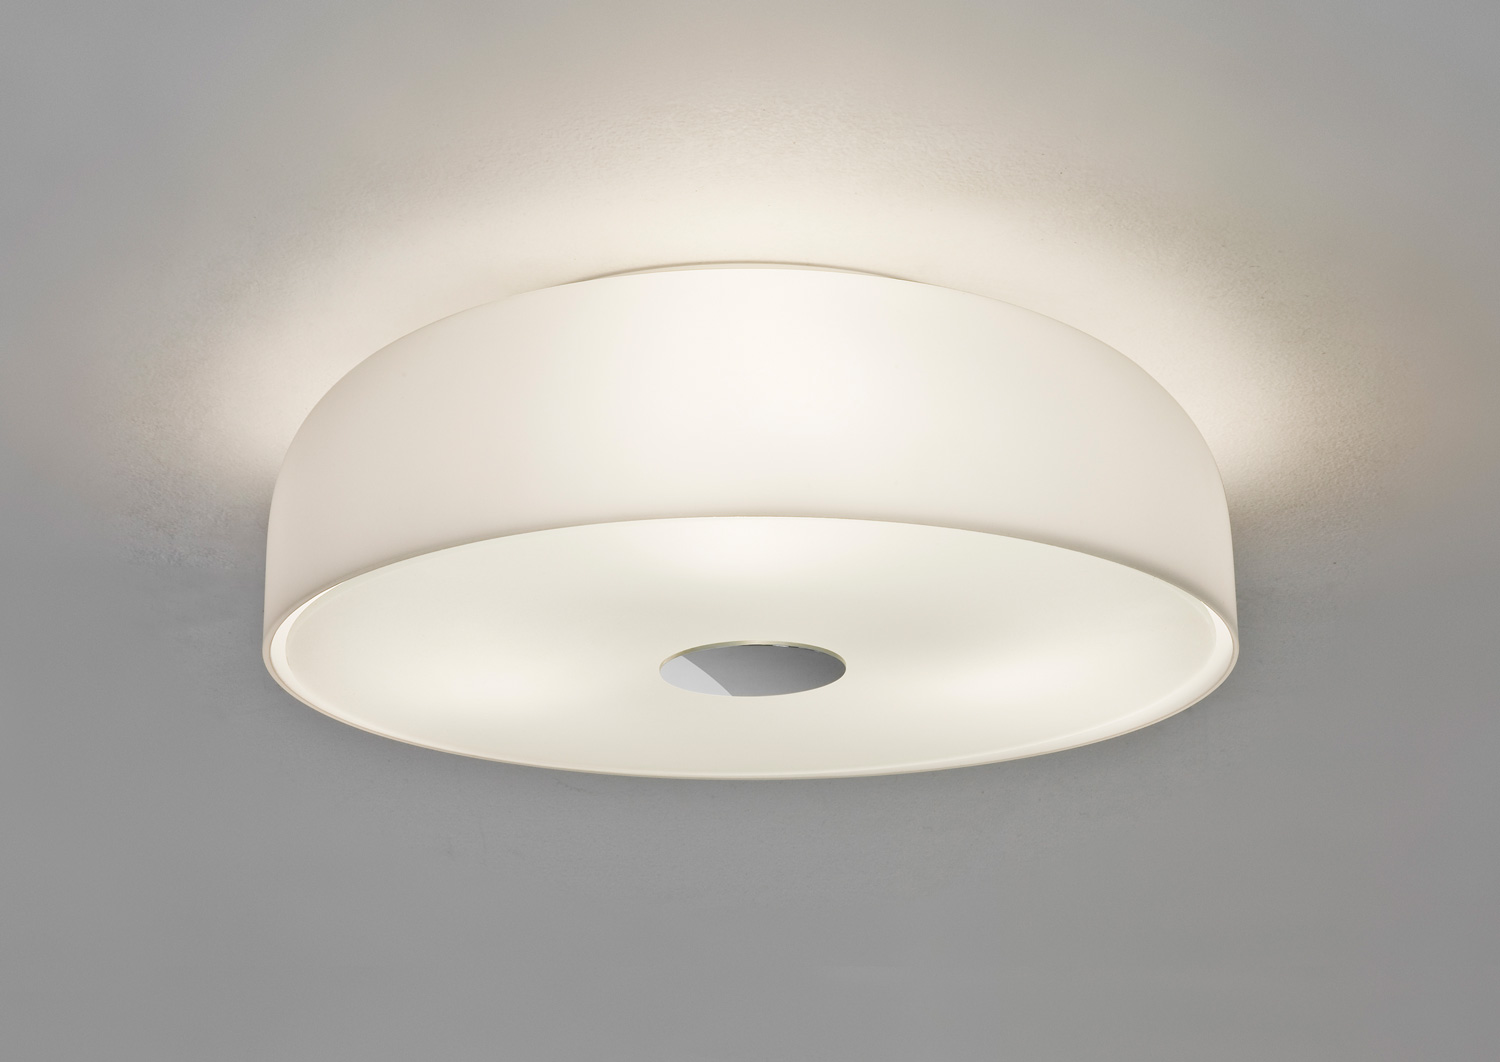 astro syros 350 7189 round dome opal glass bathroom ceiling light ceiling domes with lighting